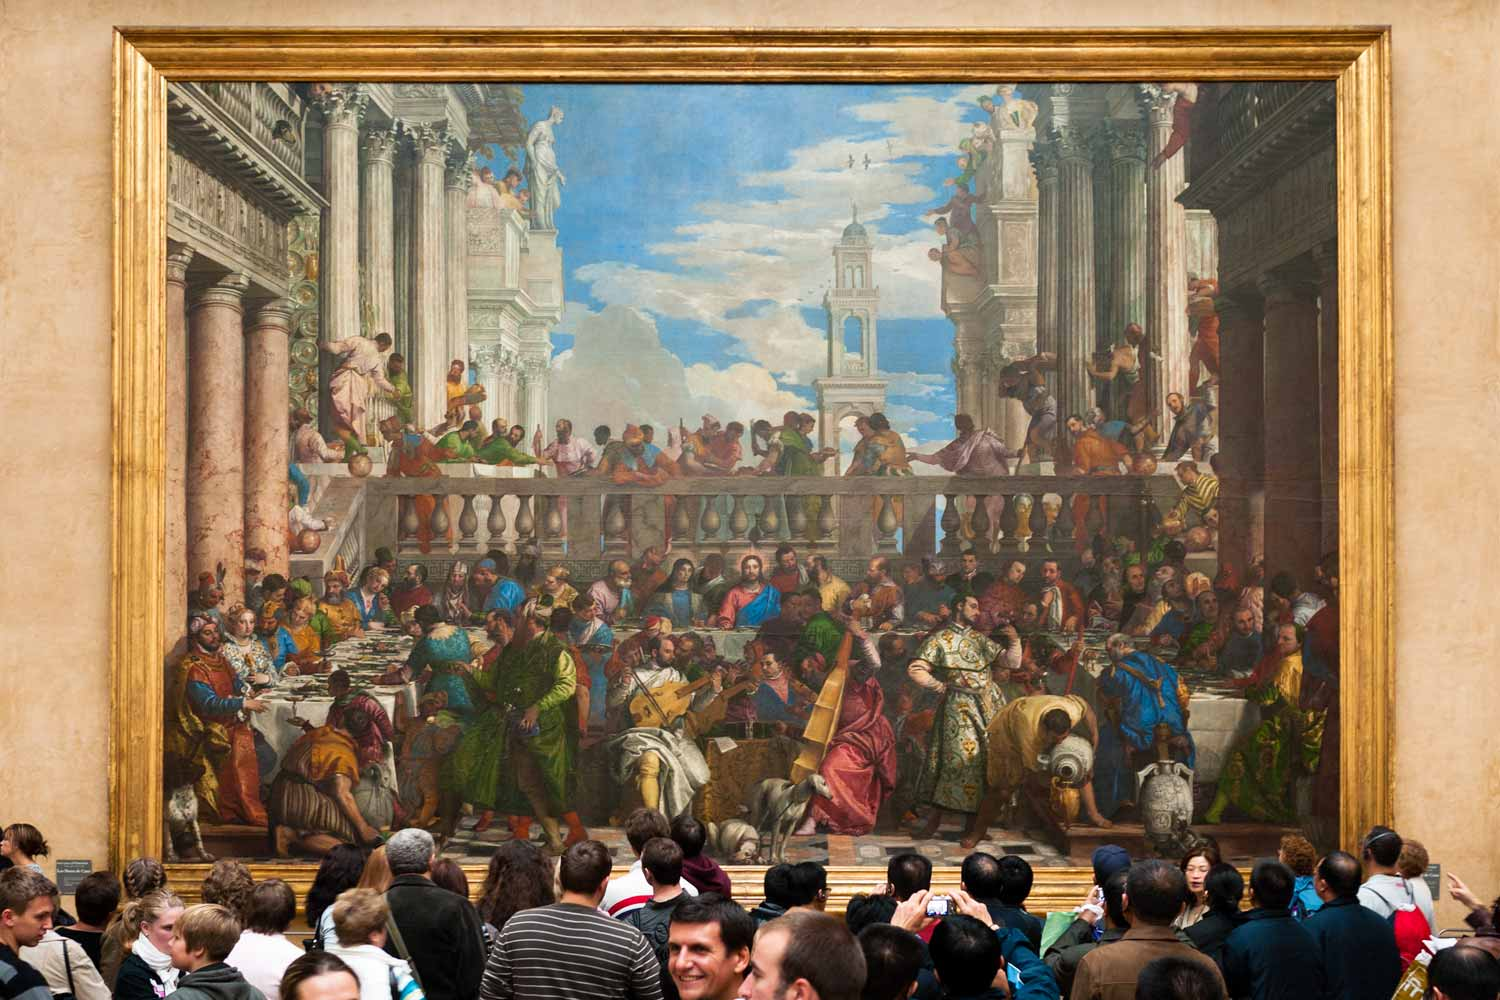 Veronese's The Wedding at Cana.